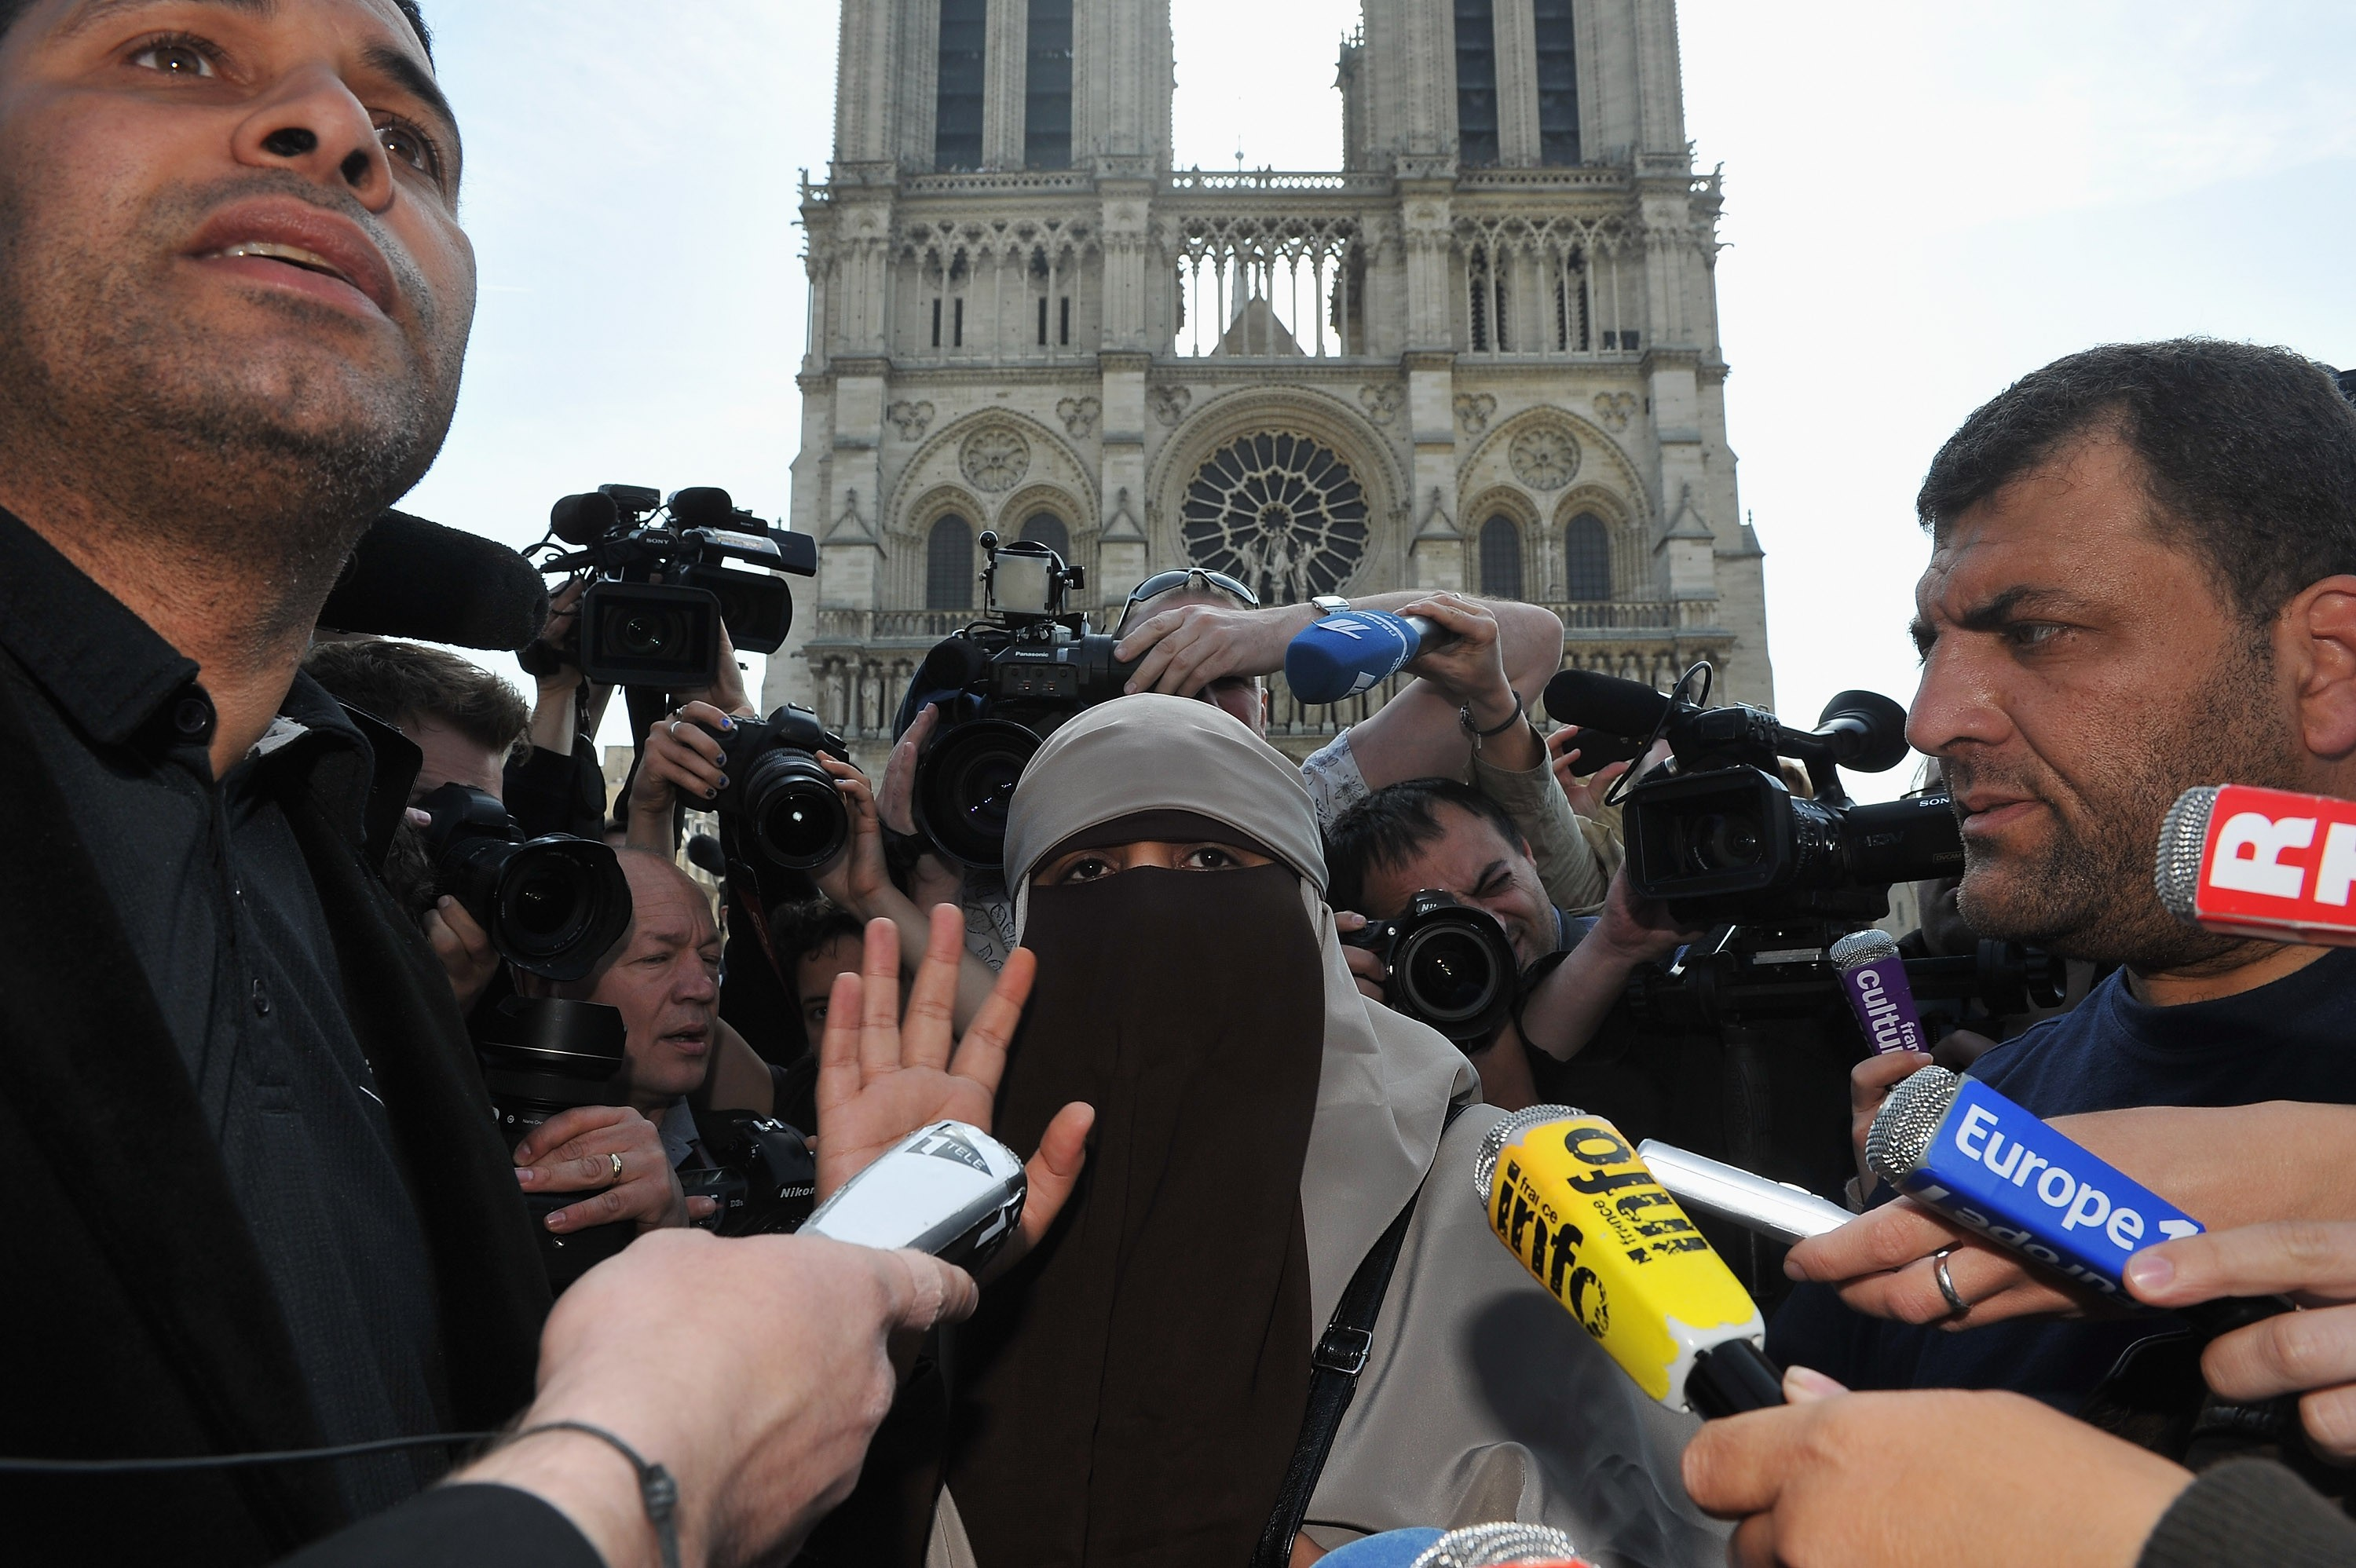 "PARIS, FRANCE - APRIL 11: Kenza Drider addresses the media as she demonstrates against the ban of the 'niqab' or full-face veil in public places, on April 11, 2011 in Paris, France. An official ban on wearing the niqab or burka came into effect in France from first thing this morning with offenders facing a fine of EUR 150. Police have stated they will be enforcing the ban 'extremely cautiously'. Police have been issued with warnings not to arrest women in the vicinity if mosques and they have also been banned from ""citizen de-veilings"". (Photo by Pascal Le Segretain/Getty Images)"